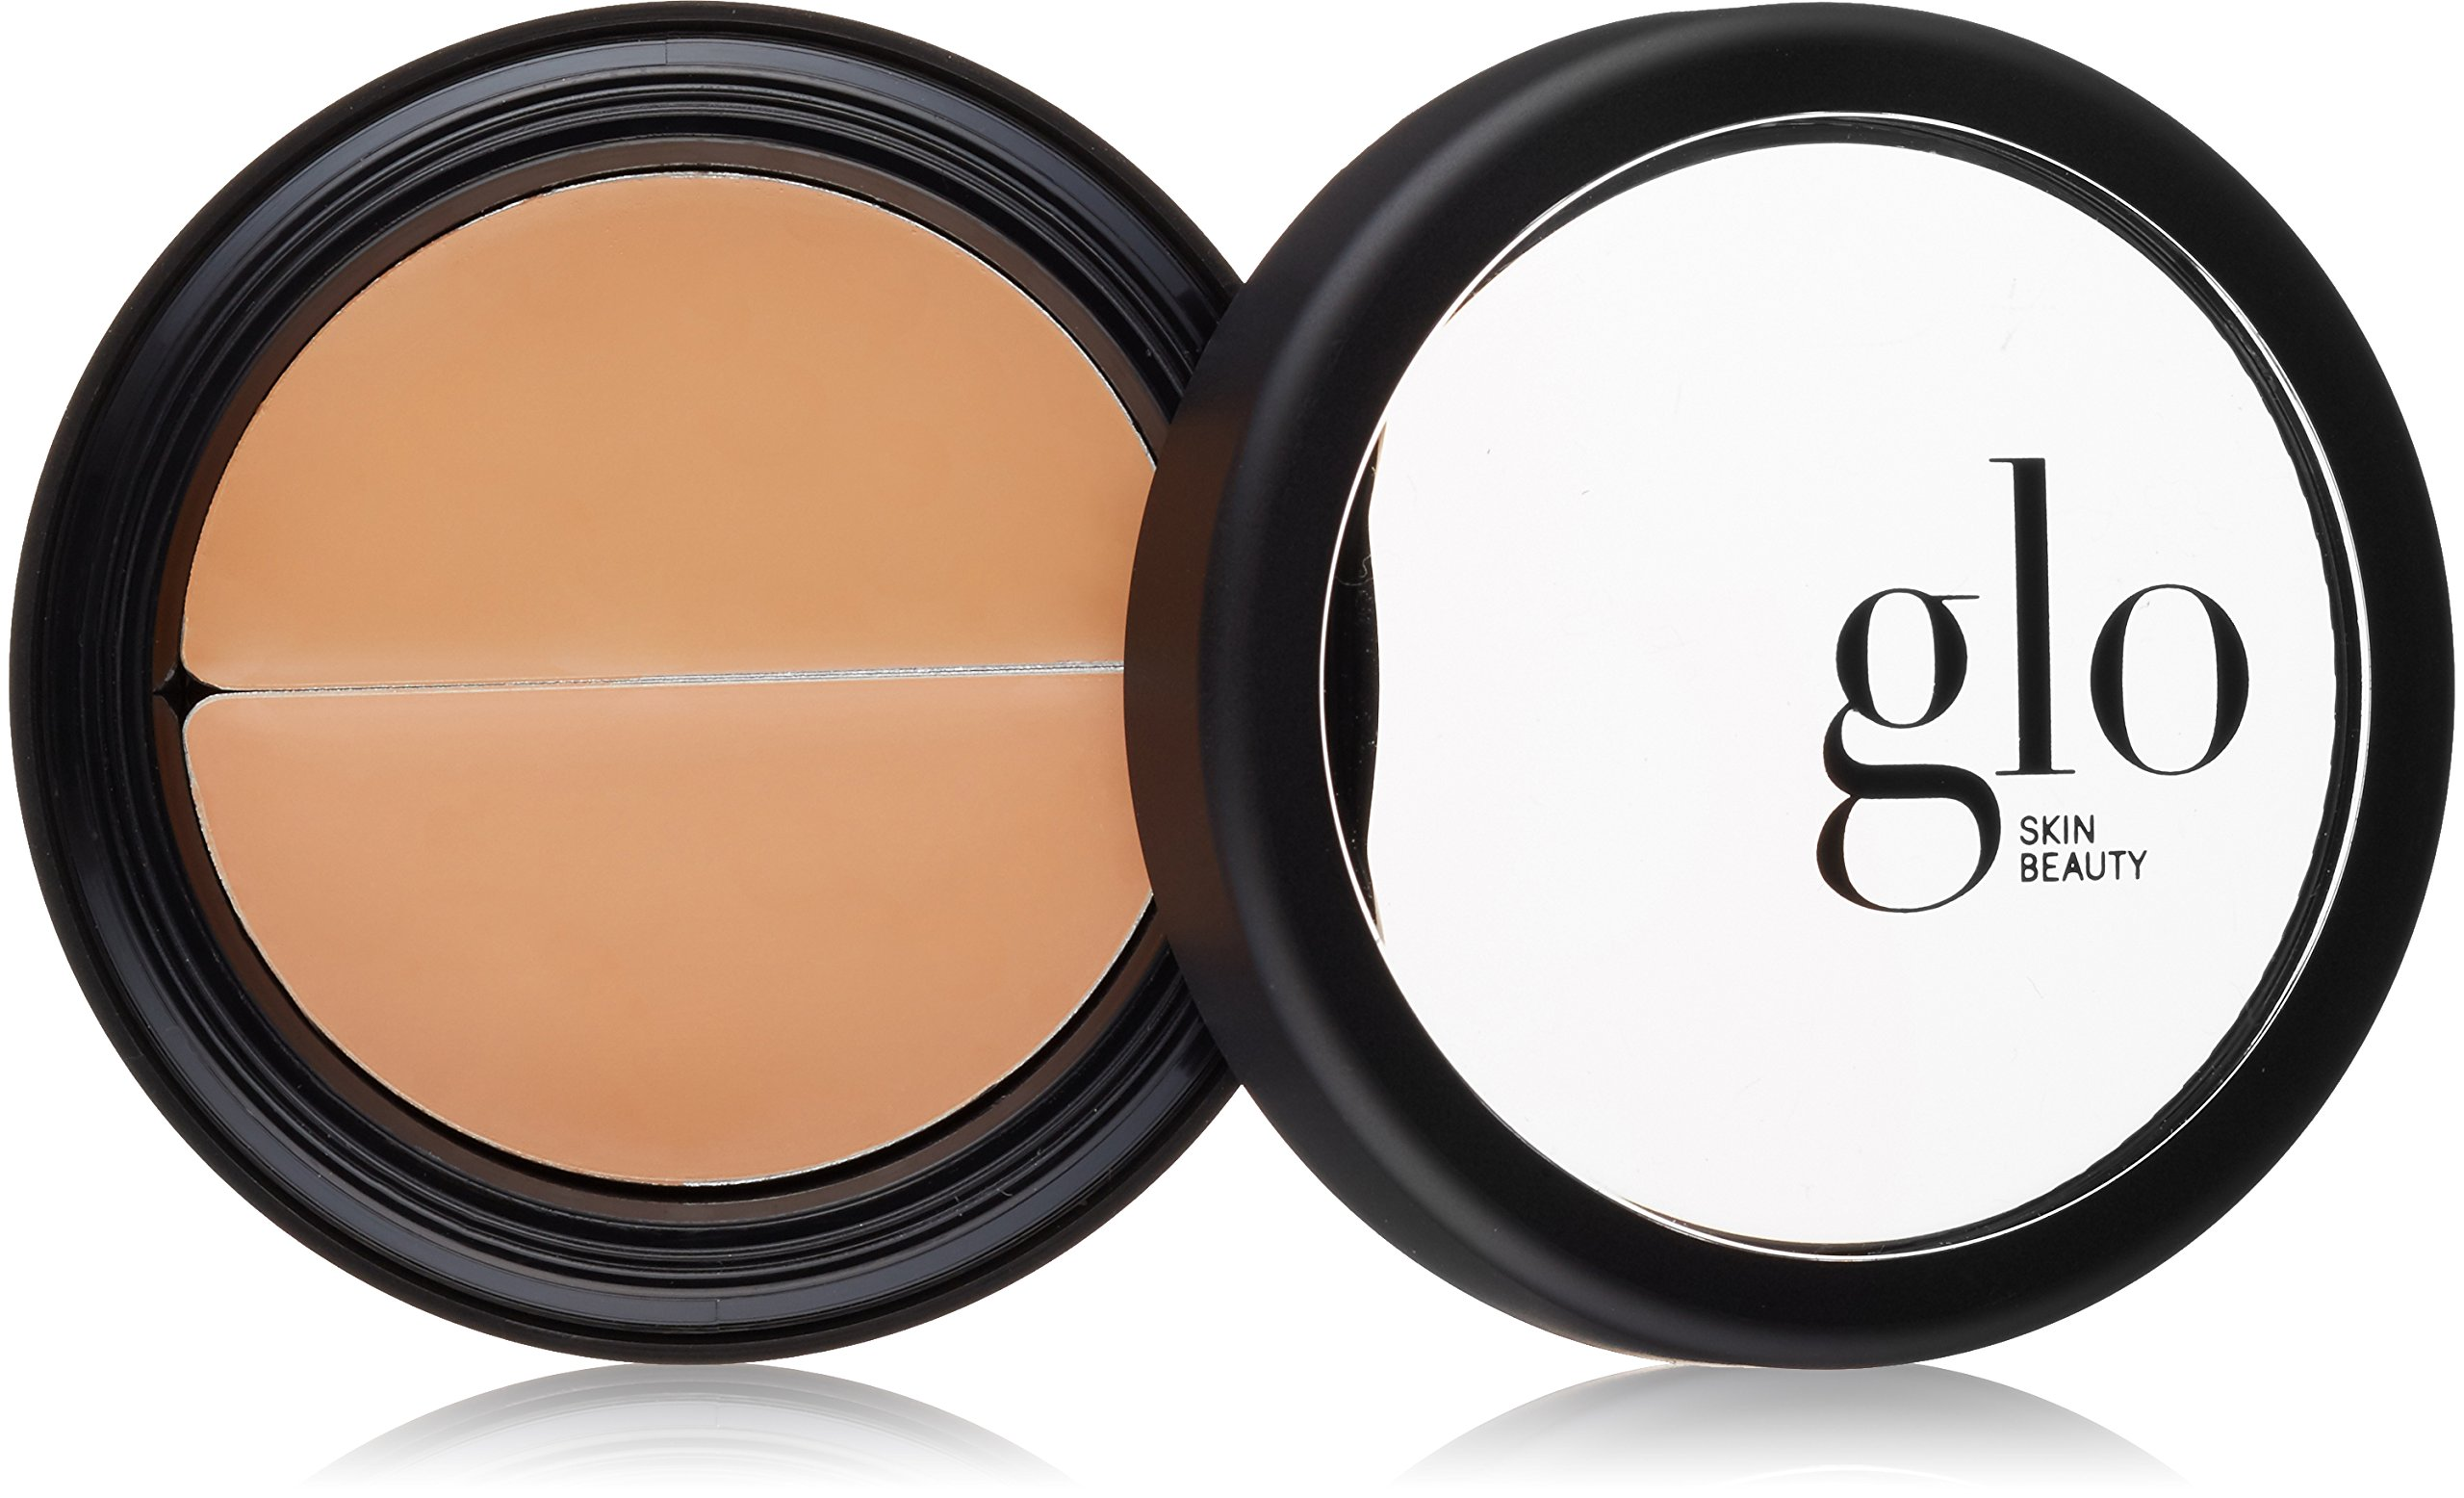 Glo Skin Beauty Under Eye Concealer - Natural - Mineral Makeup Concealer, 4 Shades | Cruelty Free